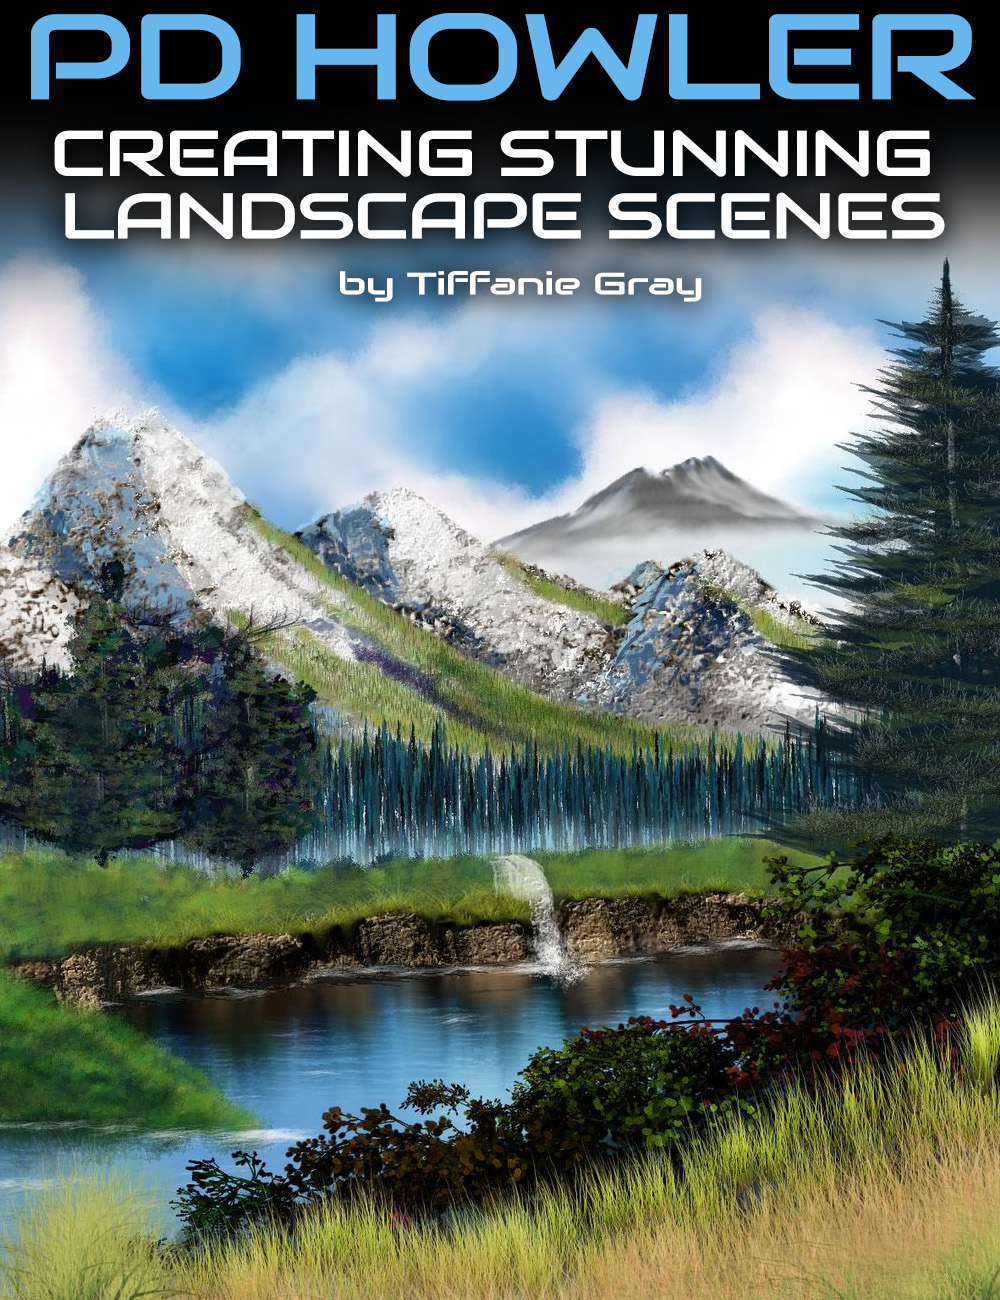 How to Create Stunning Landscape Scenes with PD Howler by: Digital Art Live, 3D Models by Daz 3D